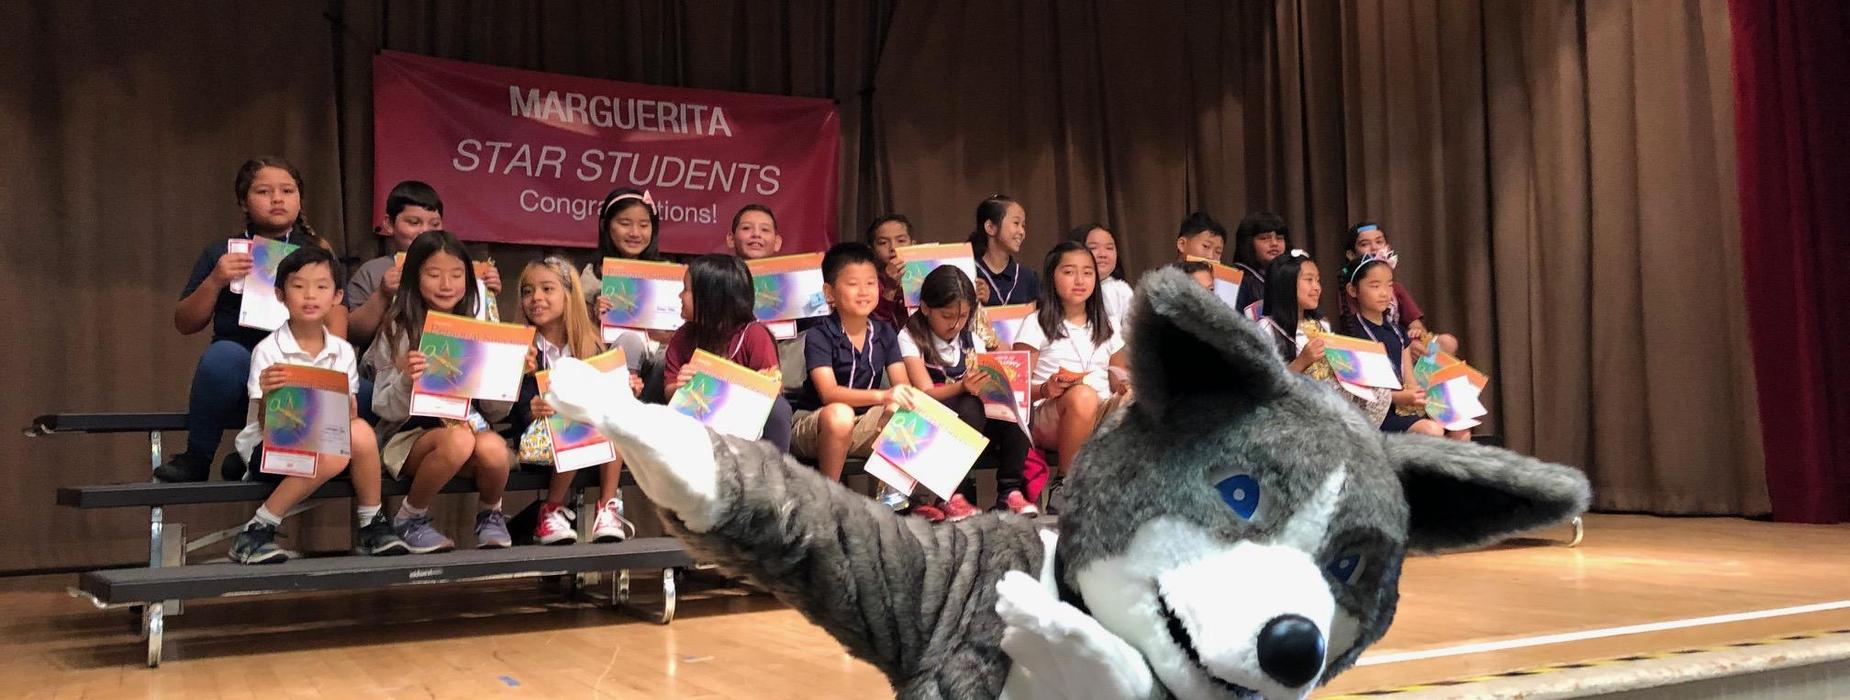 Marguerita star students honored by Mascot